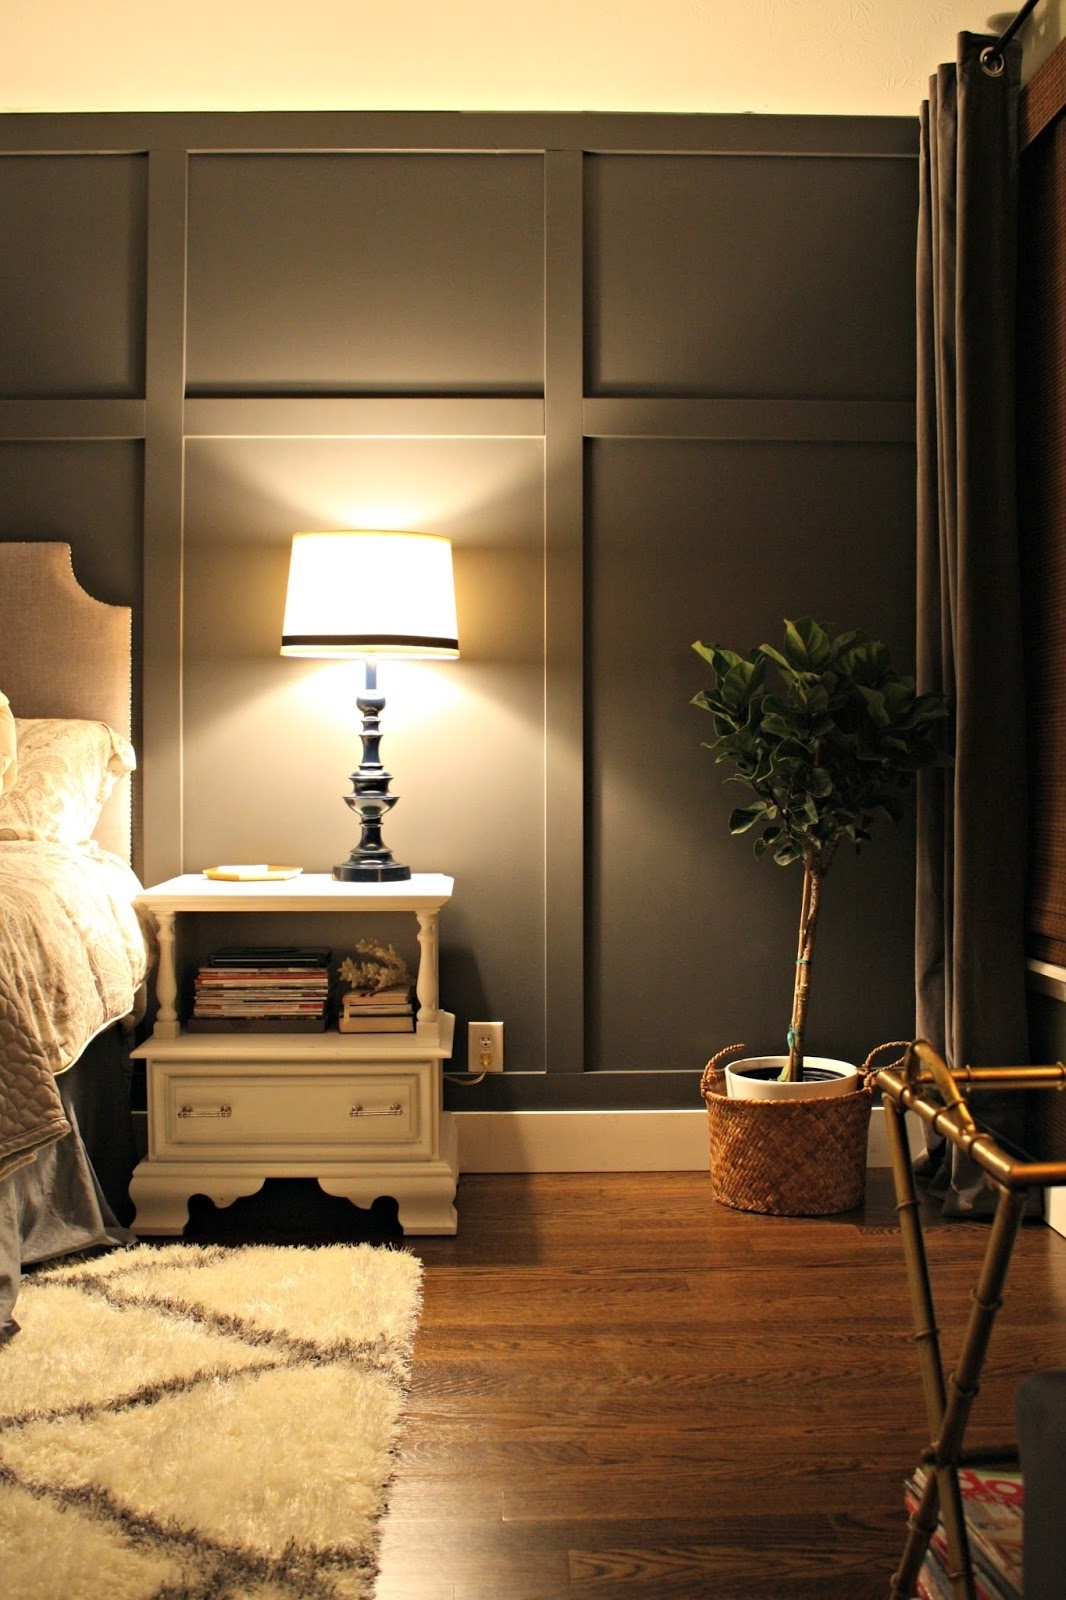 Bedroom Design: Accent Wall Panels Accent Wall Ideas For Small Pertaining To Latest Wall Accents For Living Room (View 11 of 15)